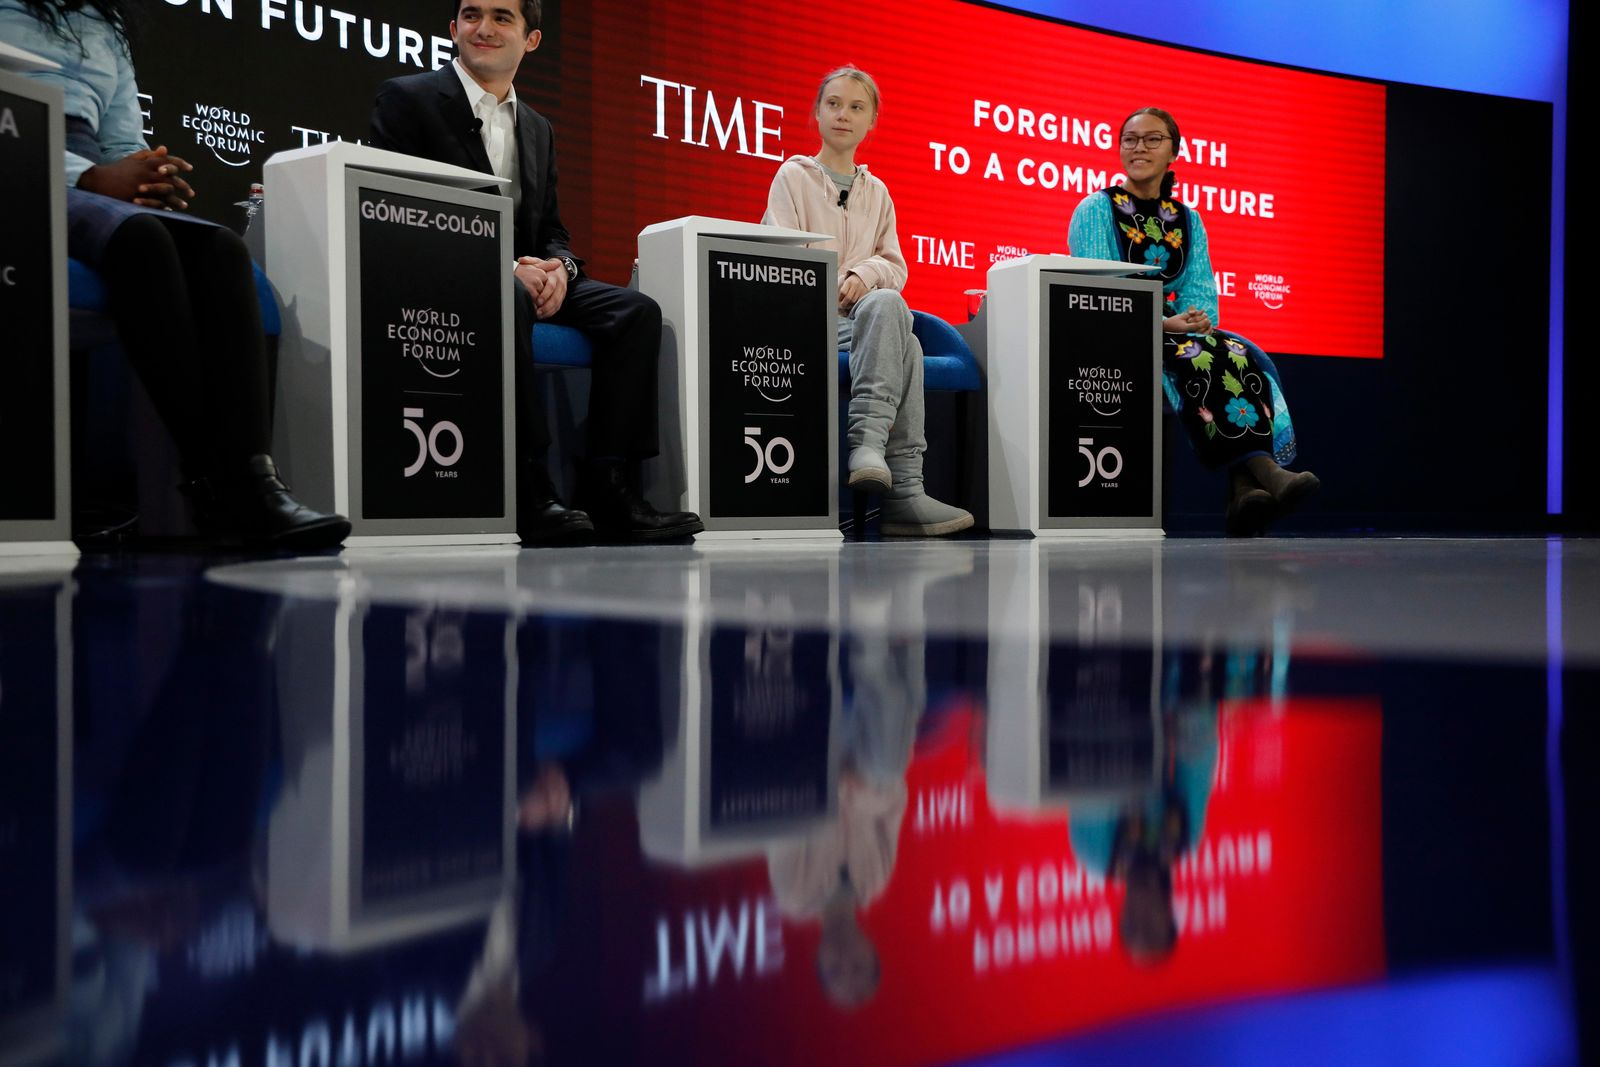 Swedish environmental activist Greta Thunberg, center, takes her seat prior to the opening session of the World Economic Forum in Davos, Switzerland, Tuesday, Jan. 21, 2020.{ } (AP Photo/Markus Schreiber)